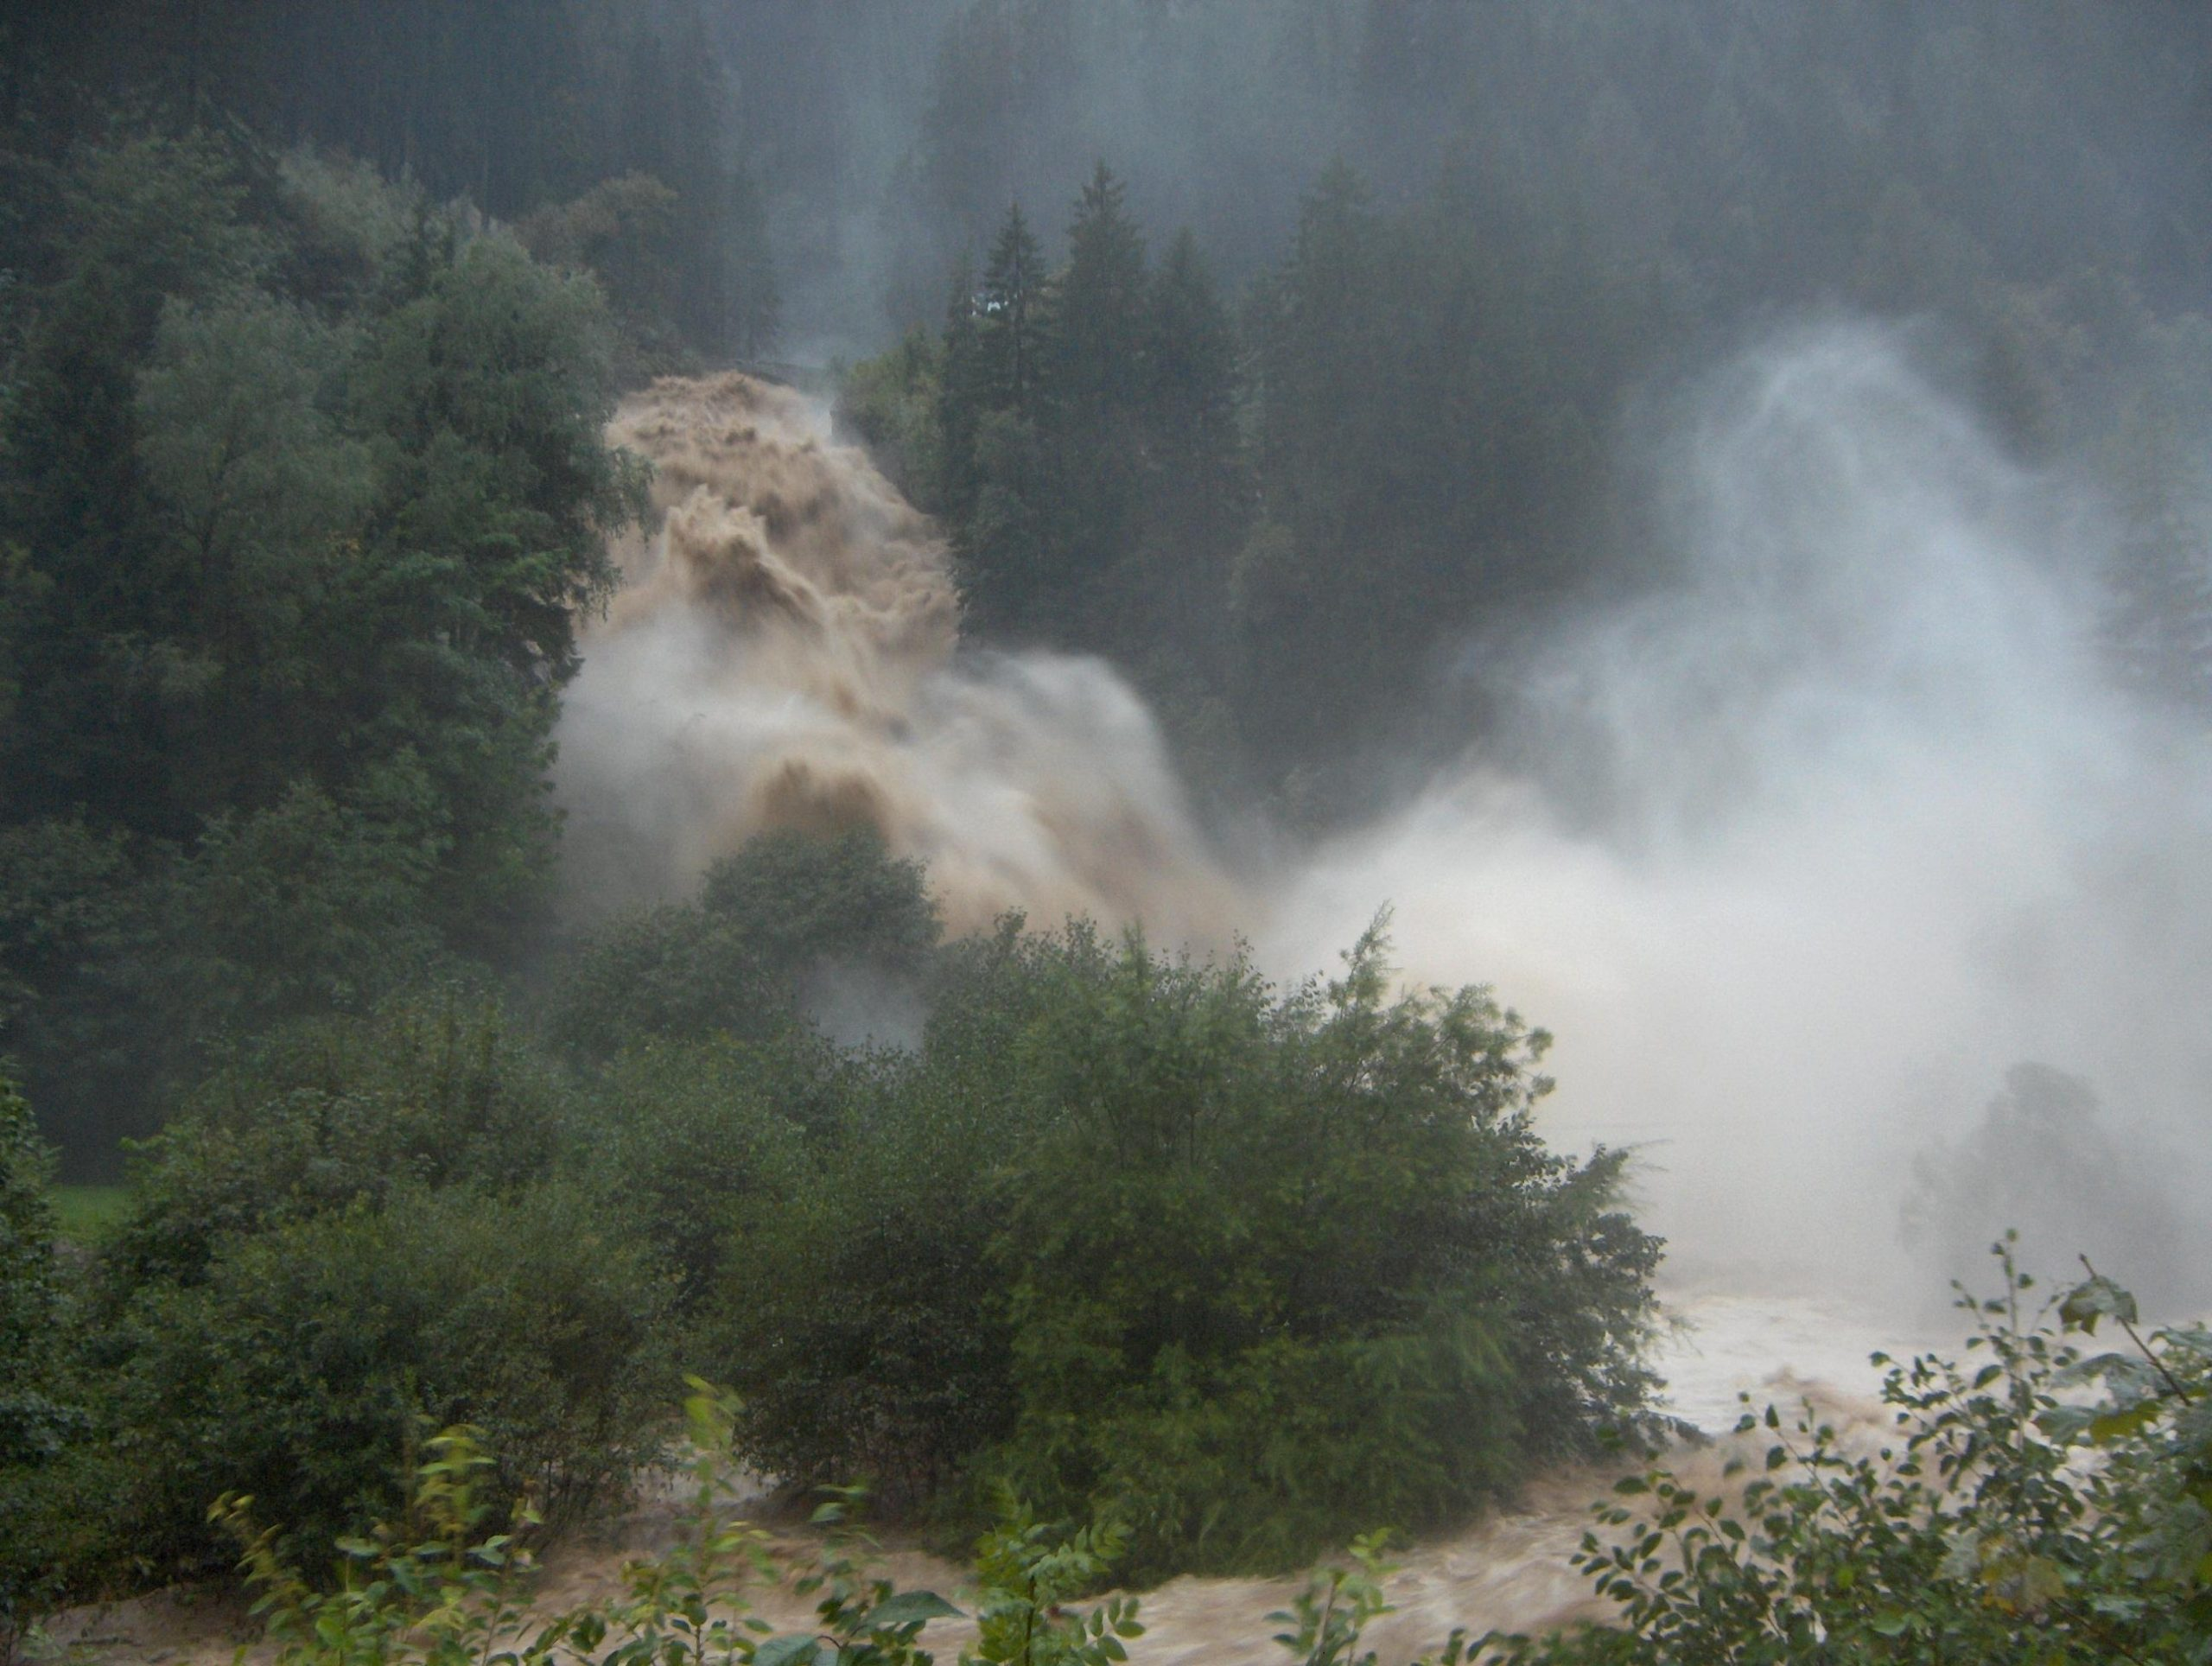 Saxetenbach Gorge Flooding - Swiss Canyoning Accident